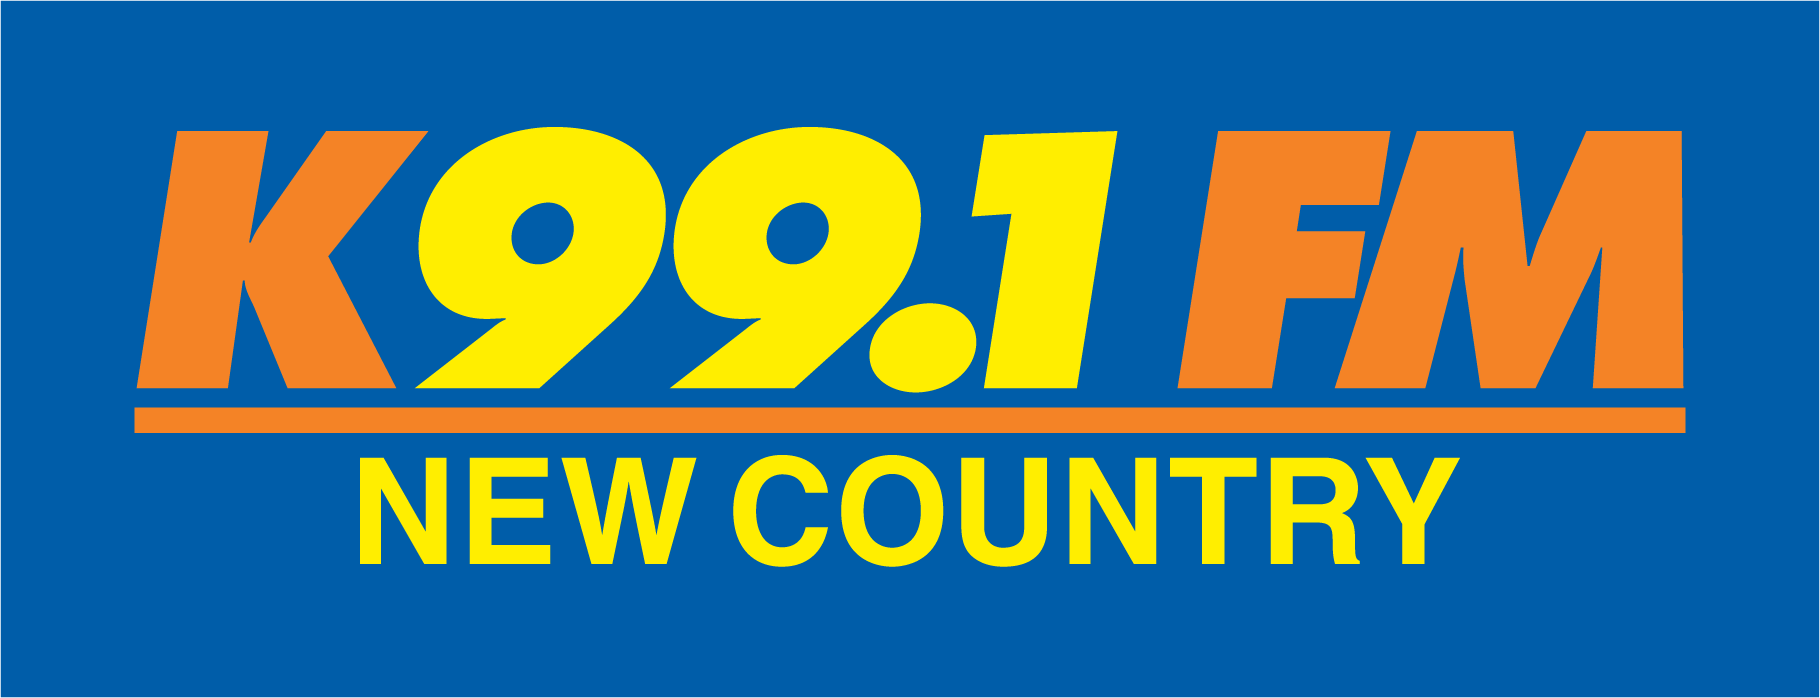 K99_NewCountry_Logo_1080.png